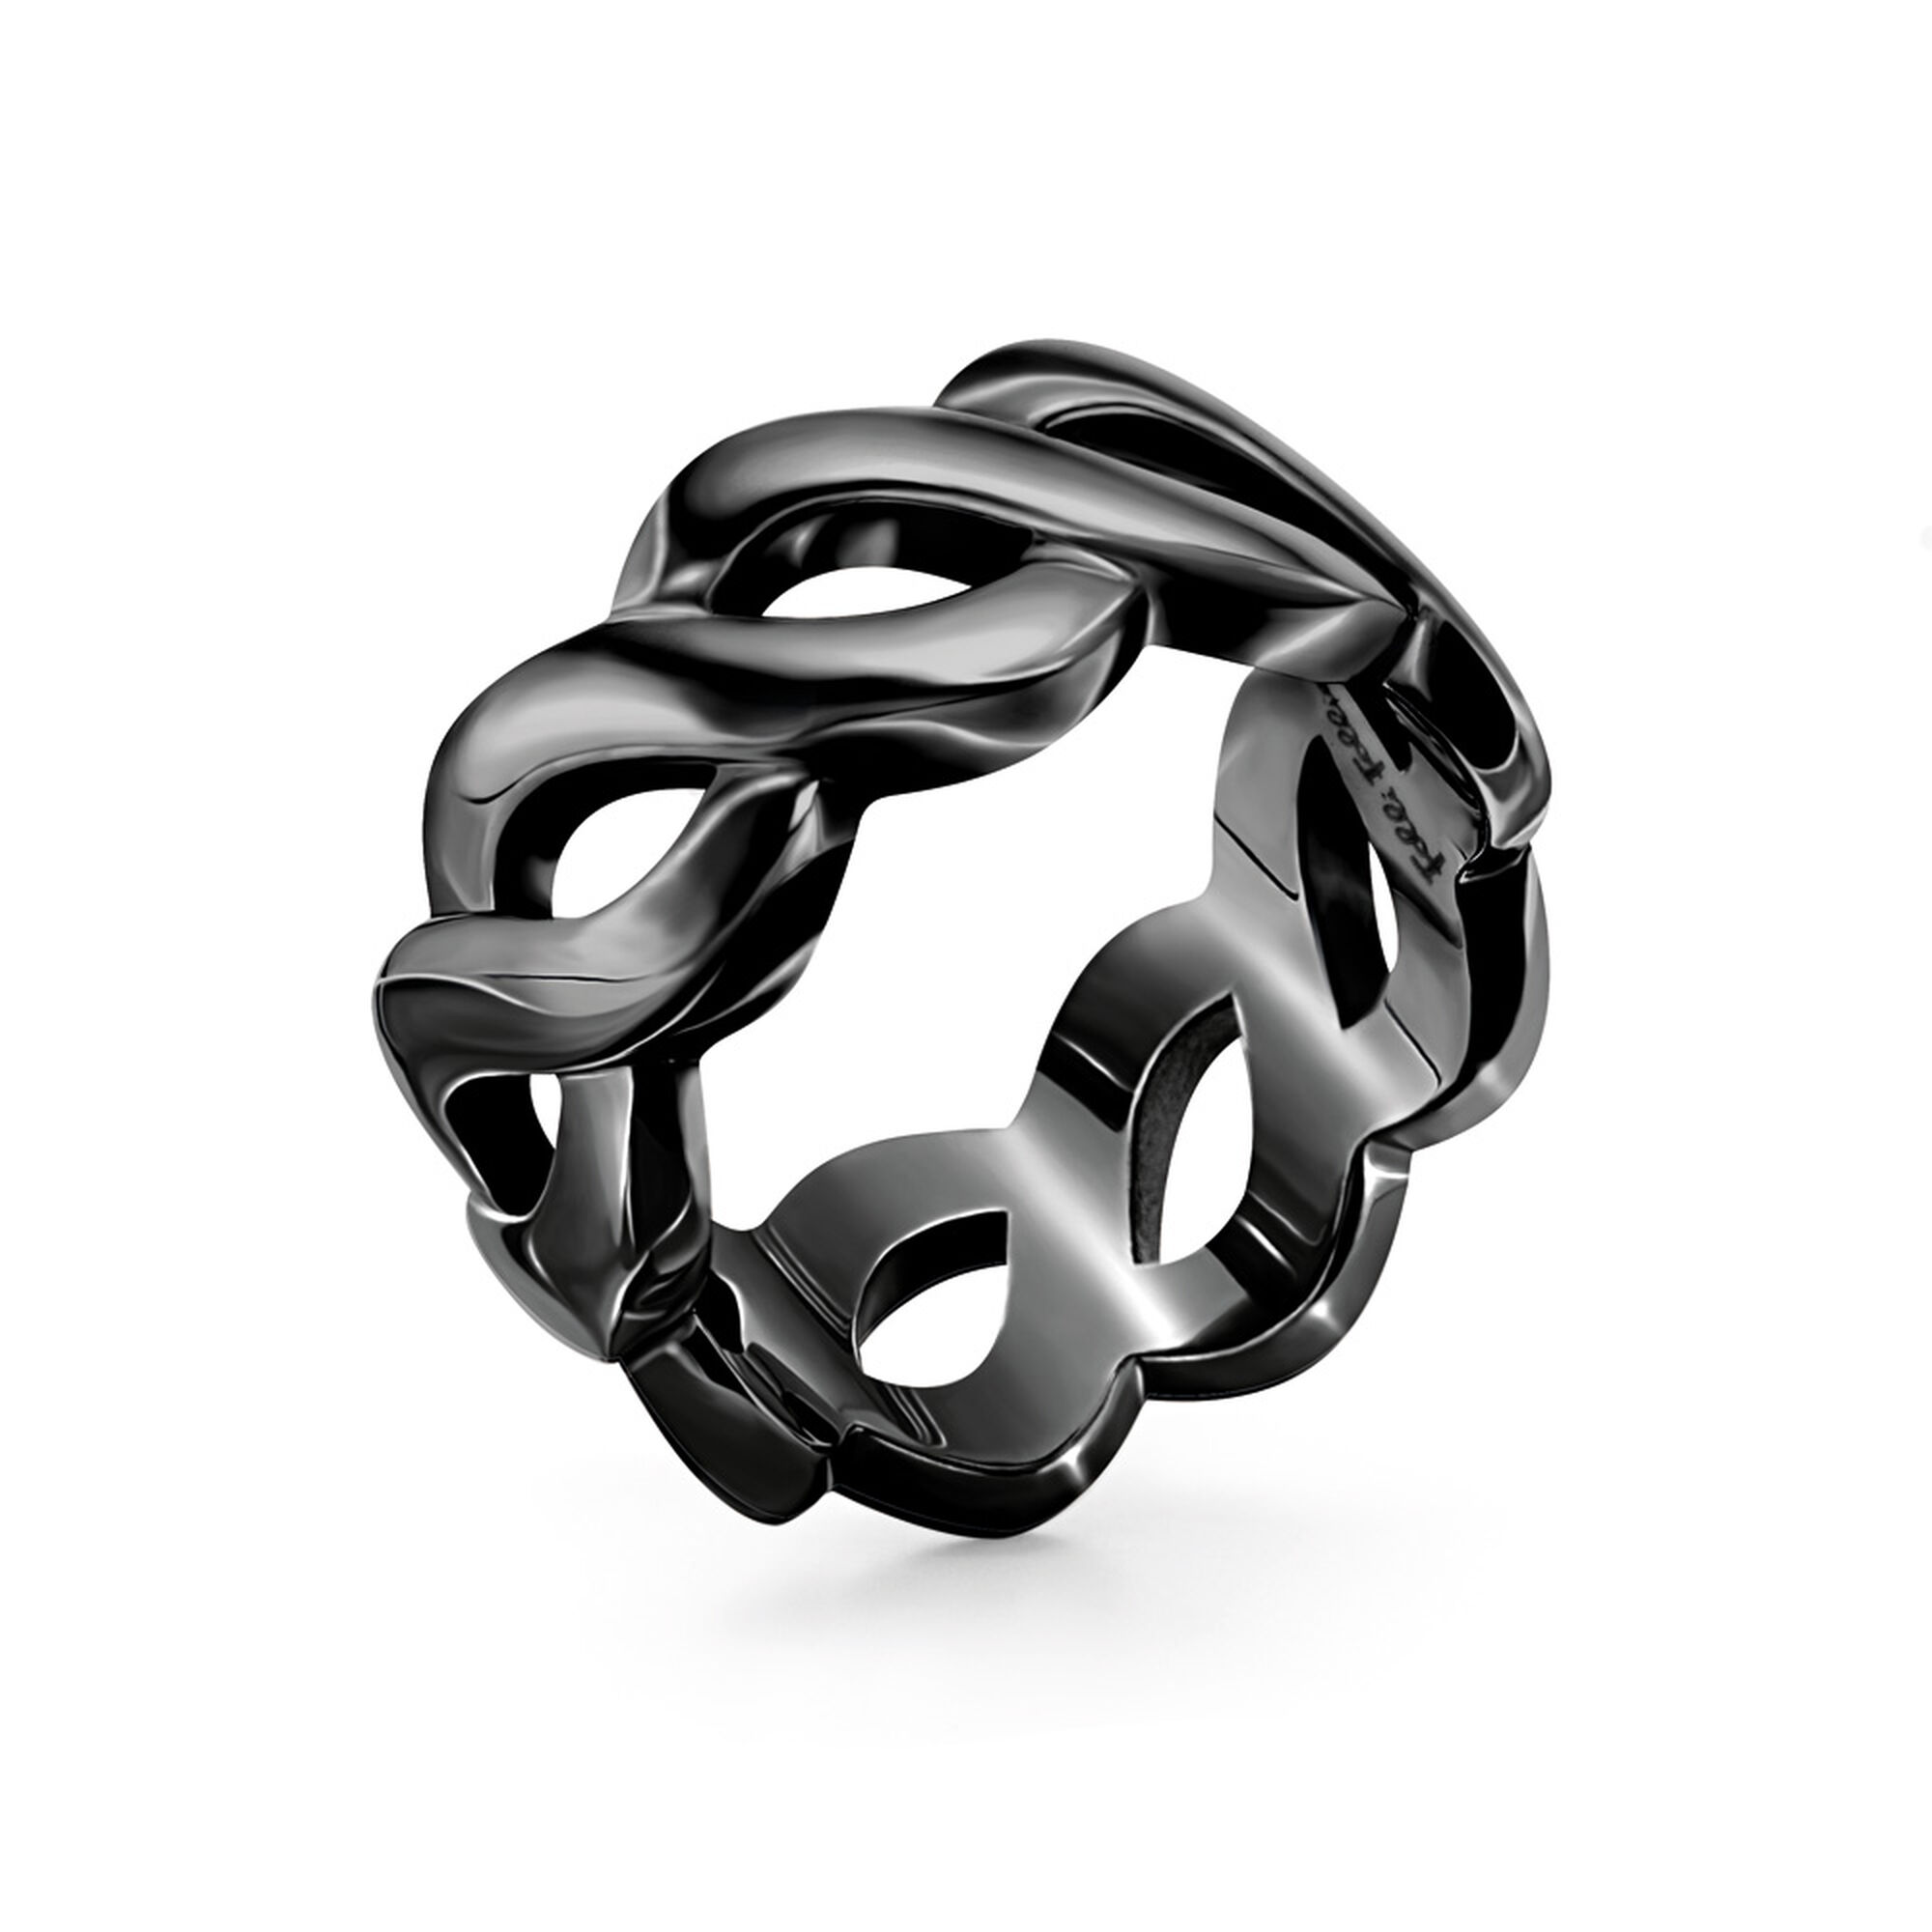 black ring women ebay design mendino itm womens s steel men mens engraved band florentine stainless rings